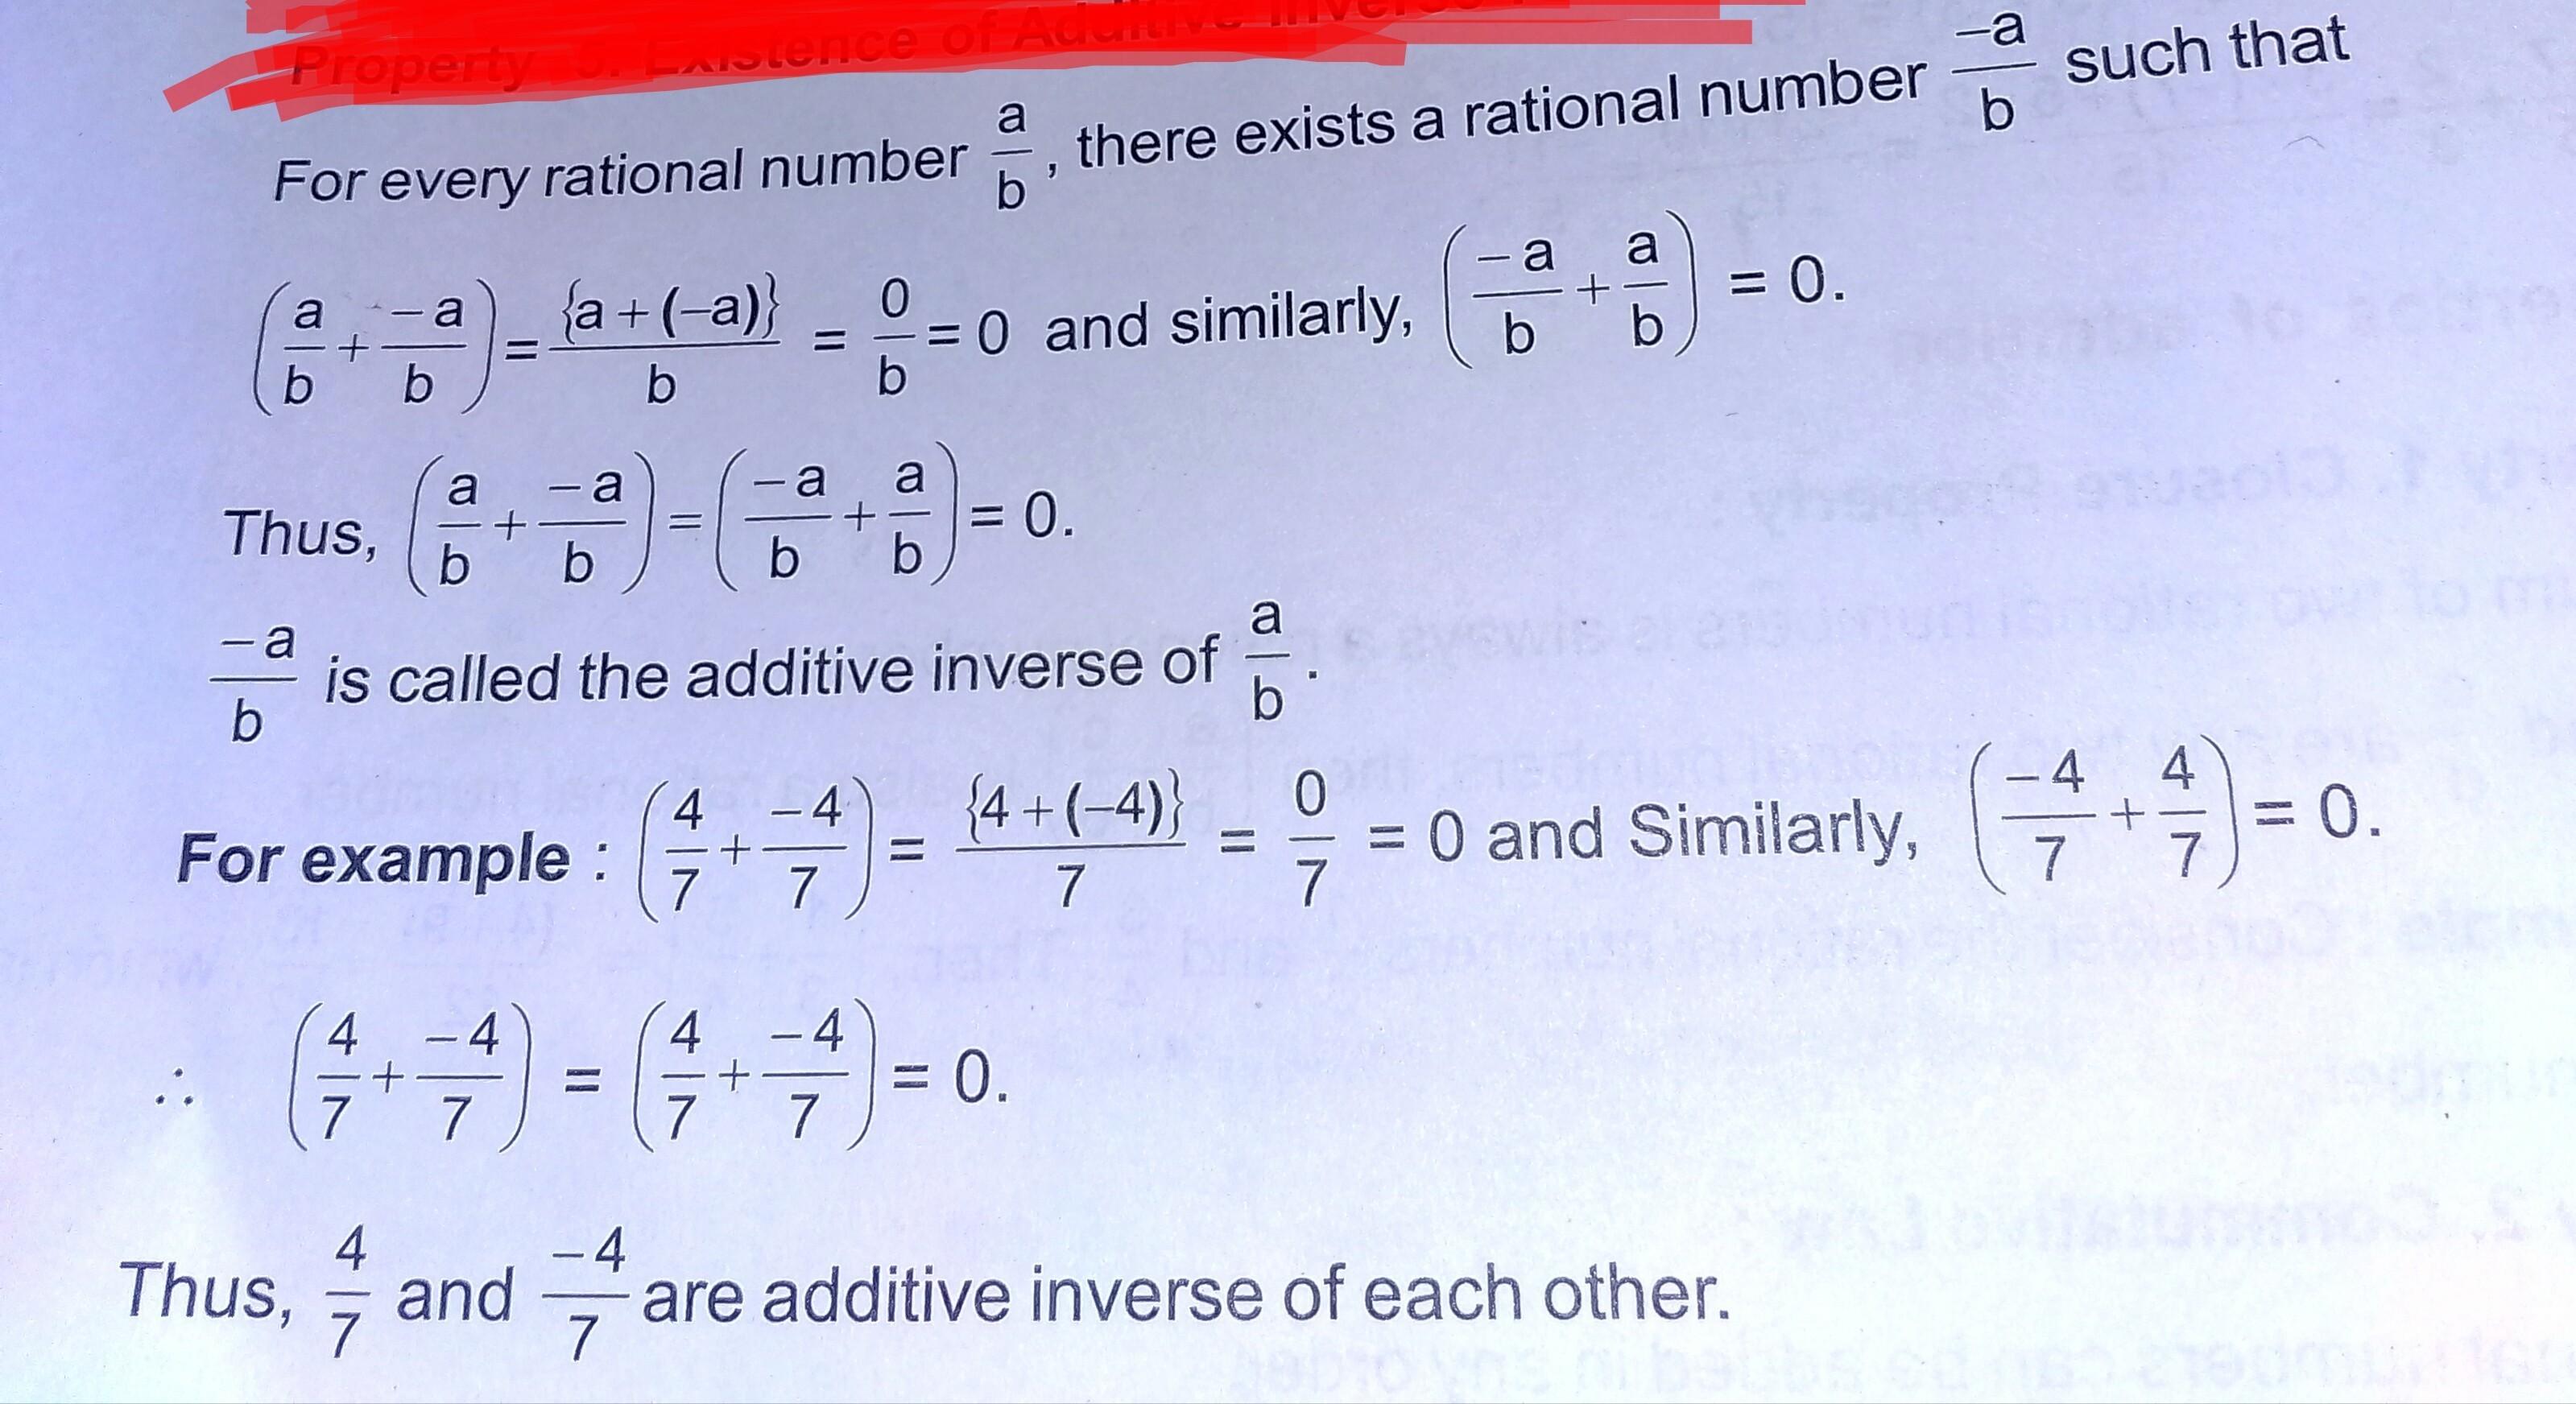 With The Help Of An Example Show That The Sum Of An Integer And Its